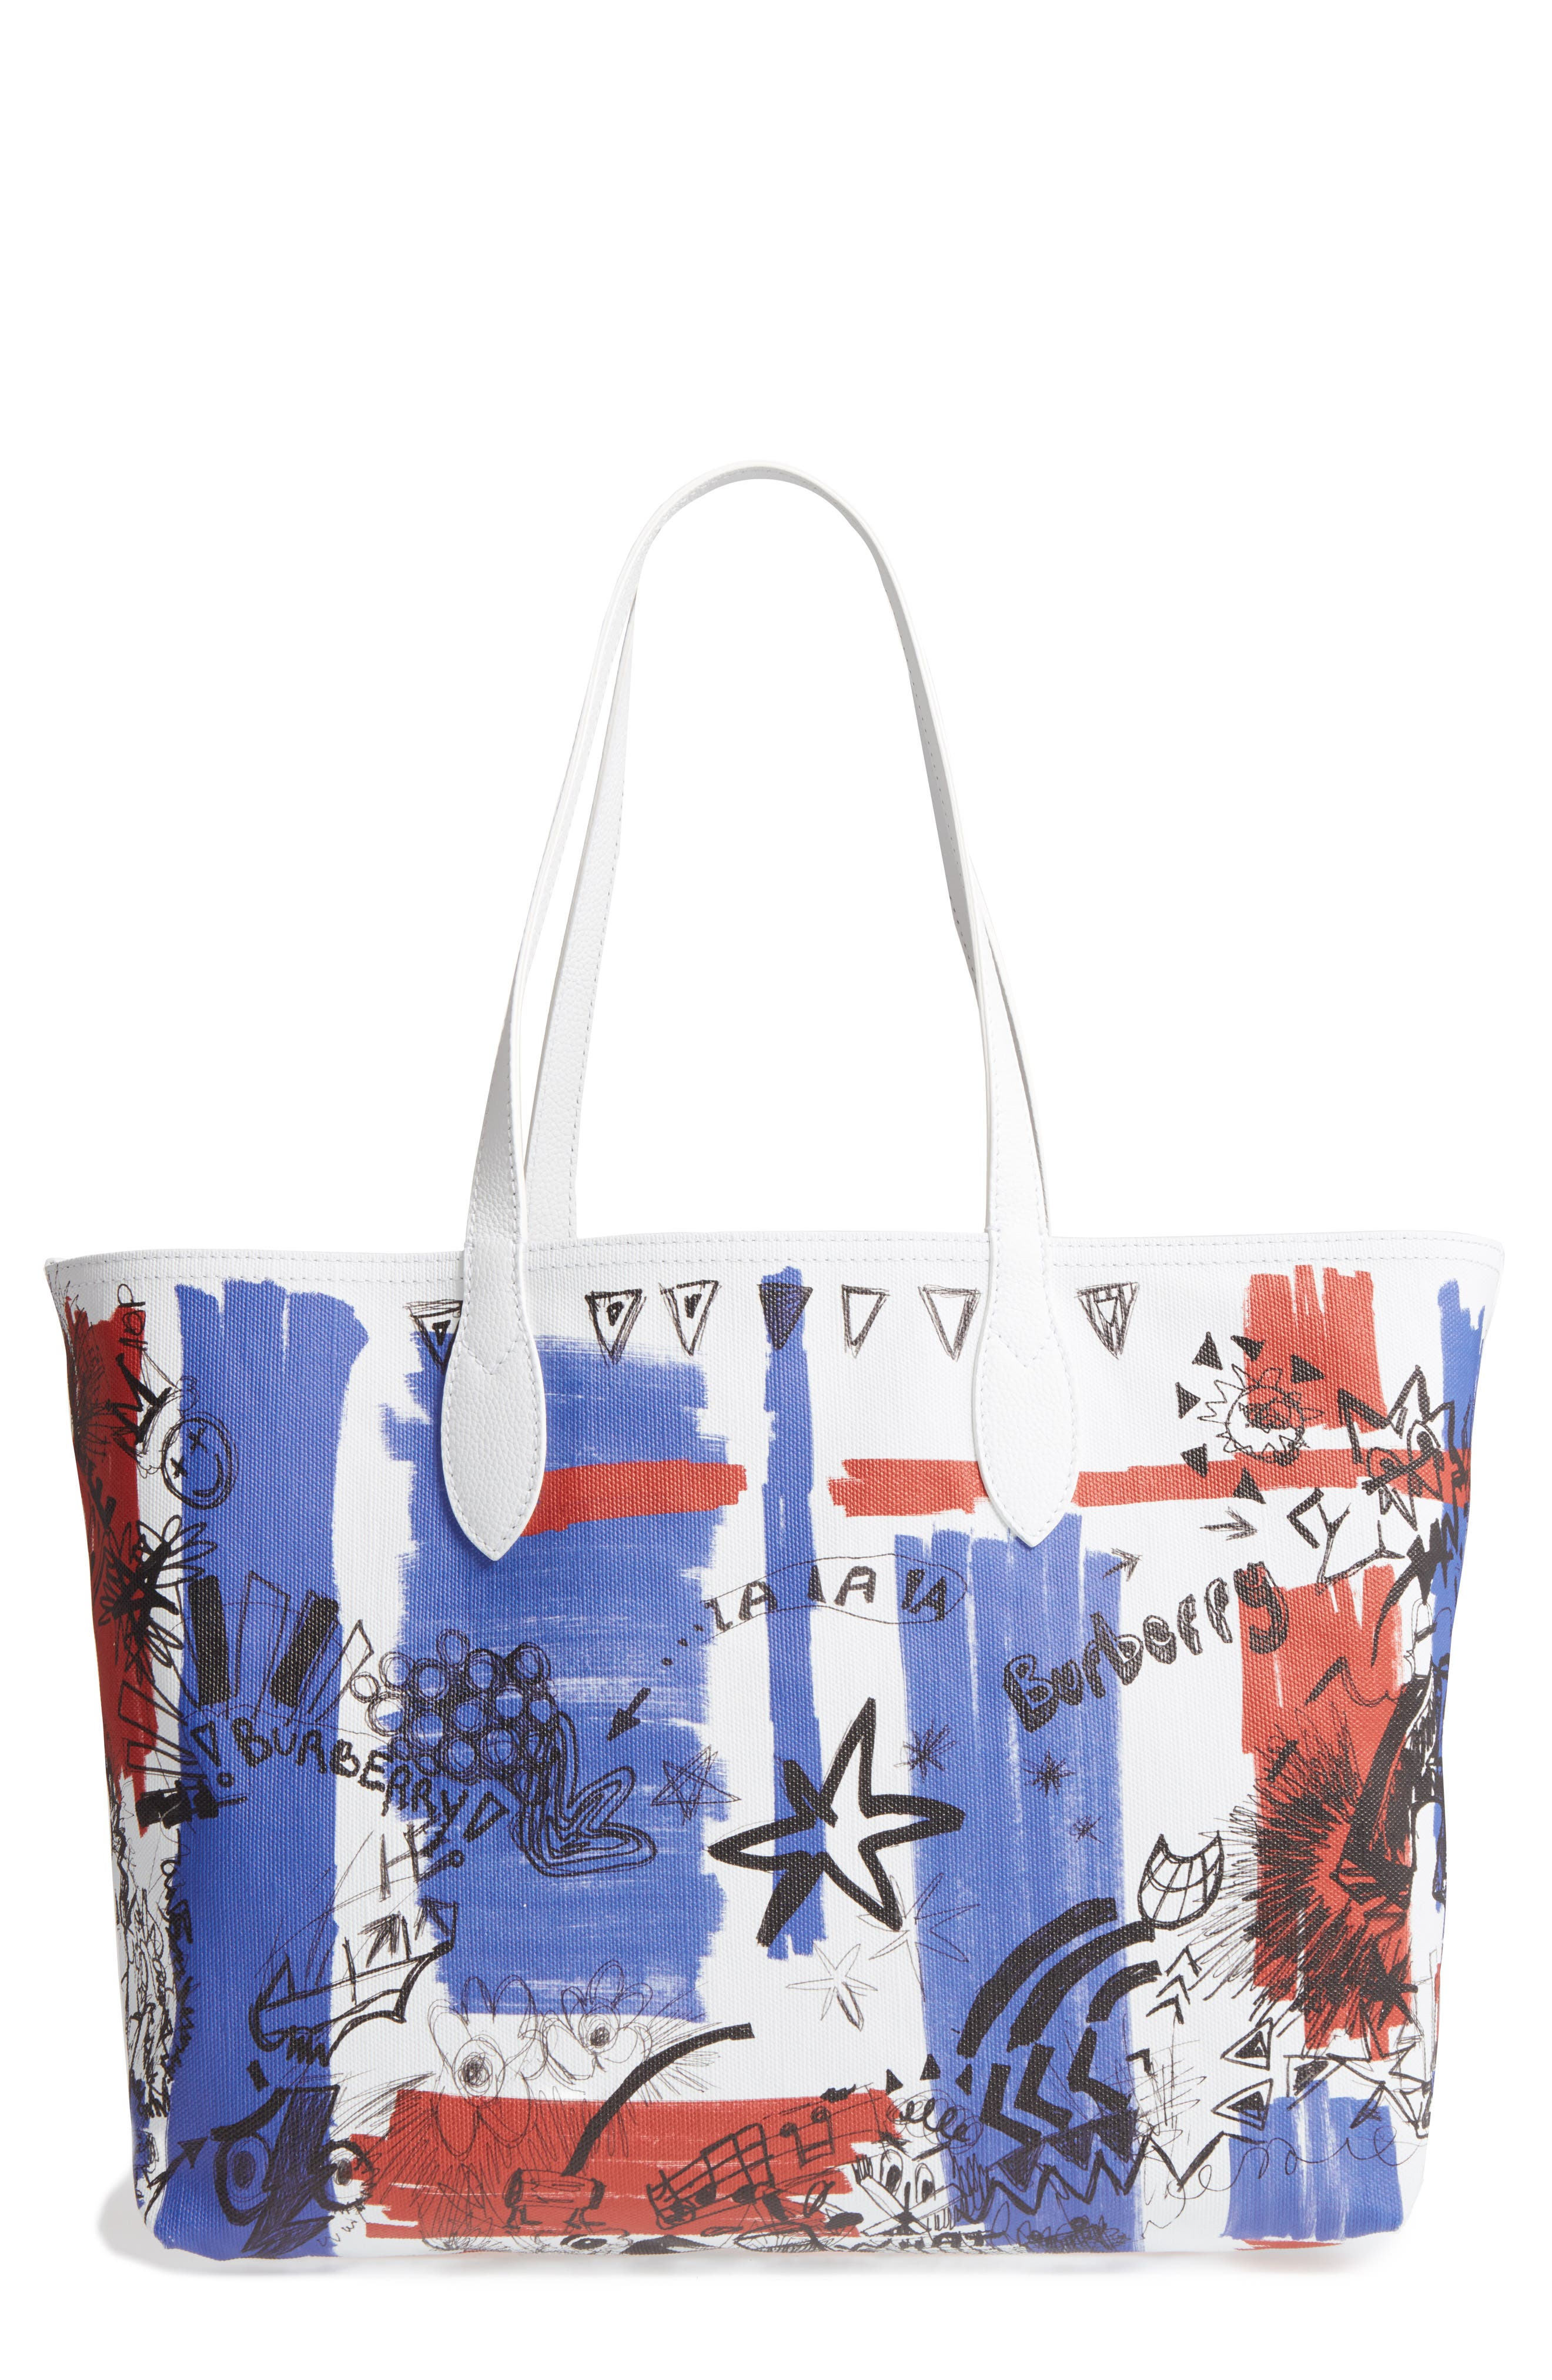 Sketchbook Series Reversible Coated Canvas Tote,                             Main thumbnail 1, color,                             231